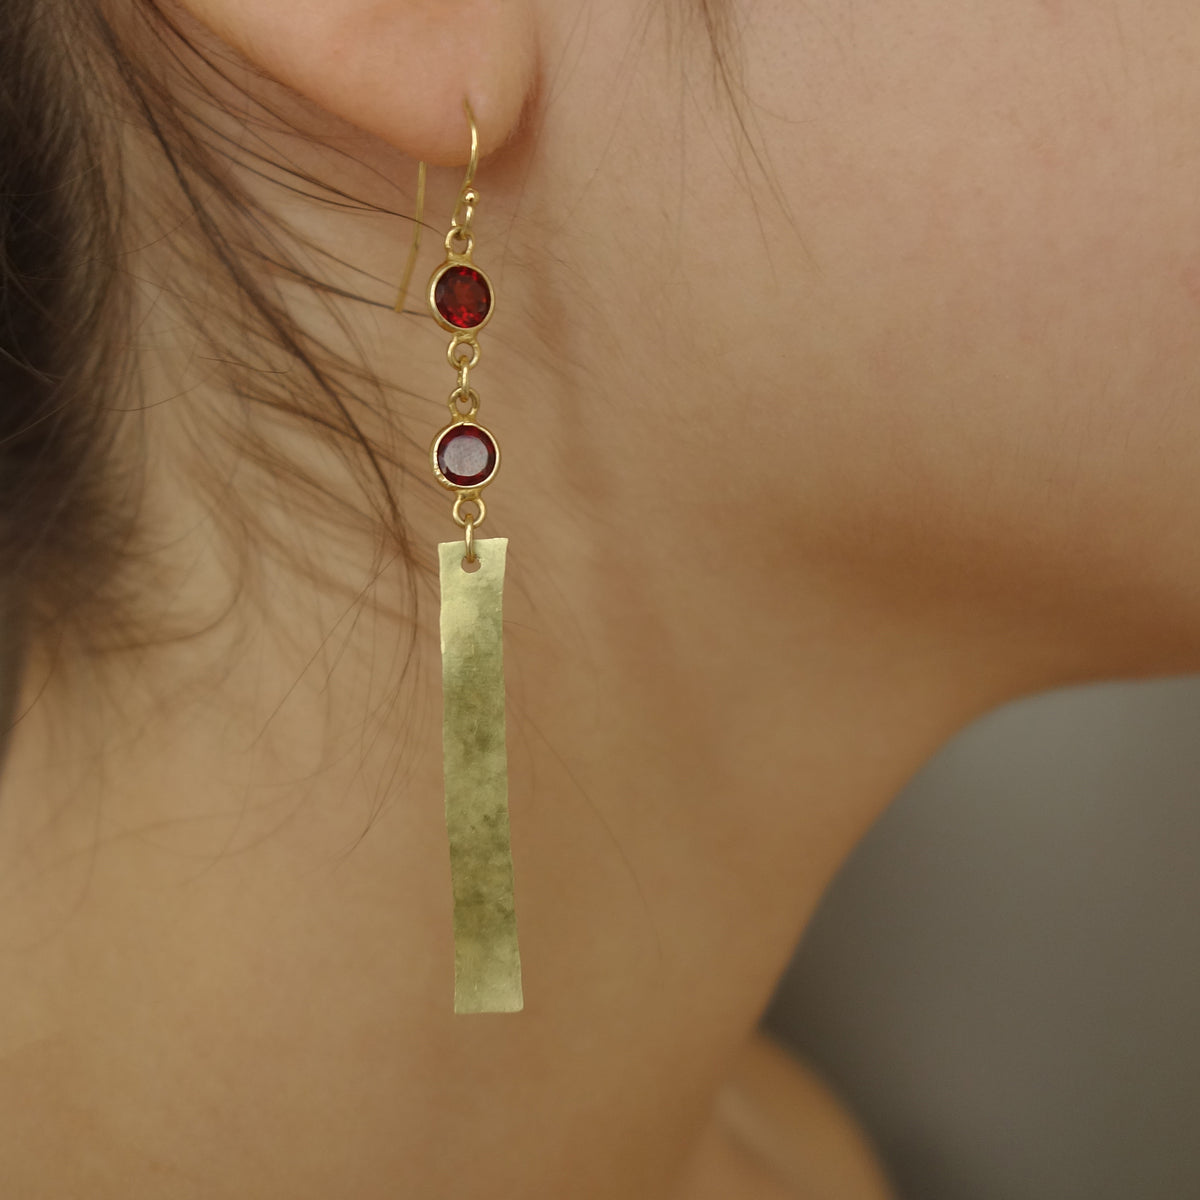 She Shines like Gold in the Sun (garnet, gold, and brass earring)